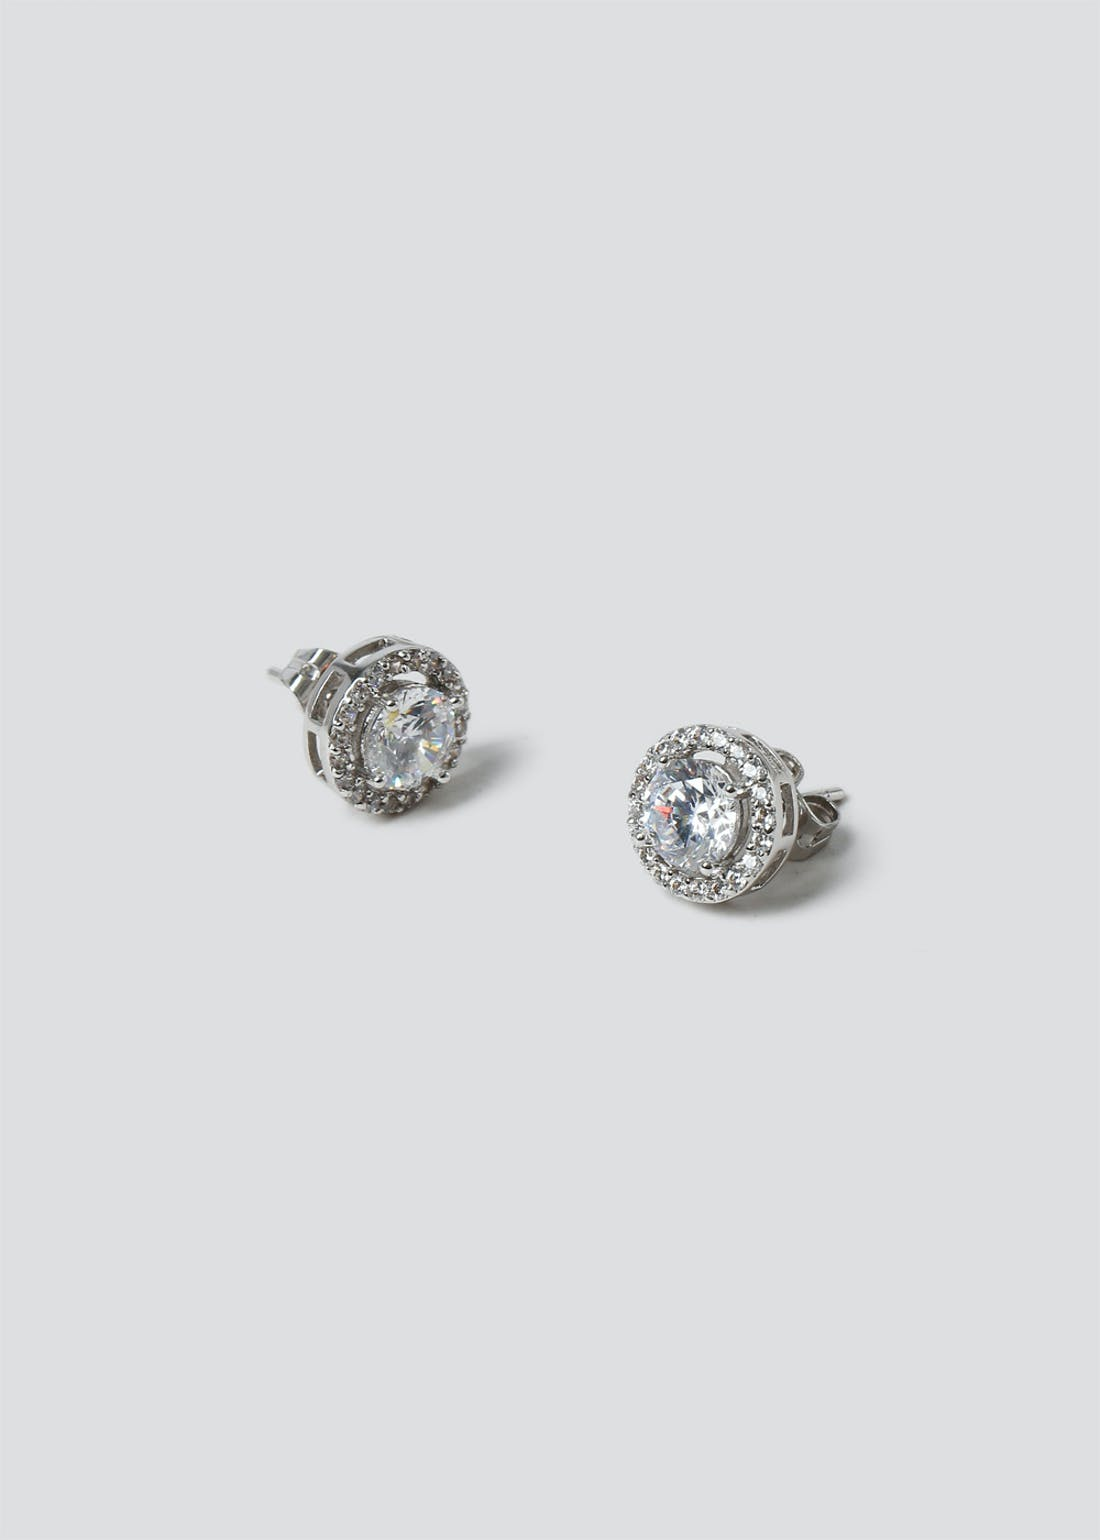 Platinum Plated Circle Stud Earrings In a Gift Box